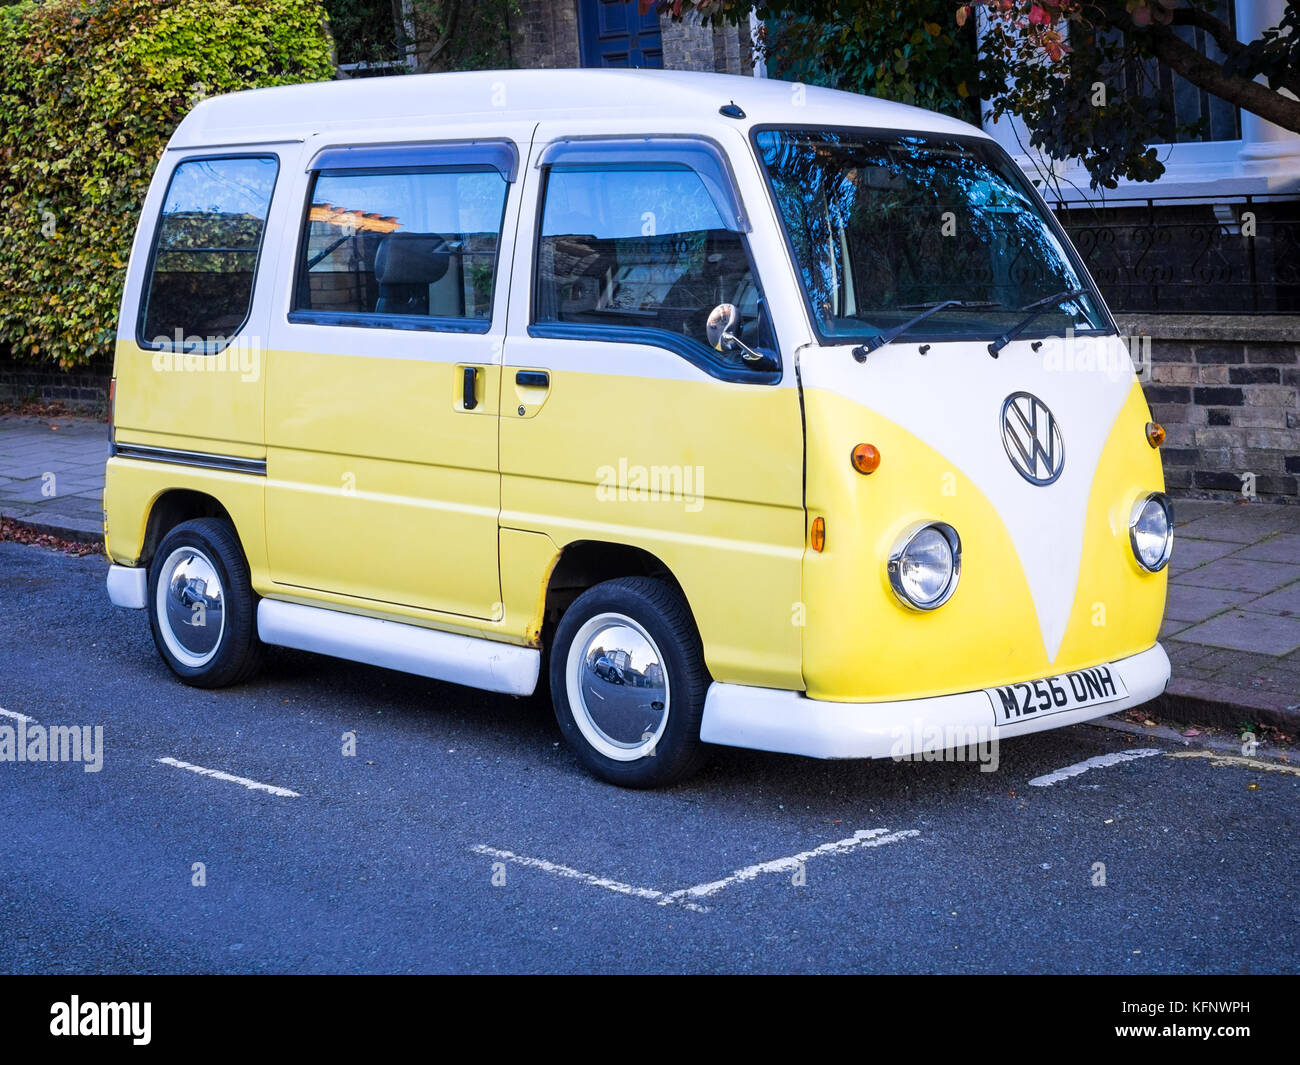 Fake VW Camper Van - a Subaru Sambar van tricked out as VW Camper Van - Stock Image